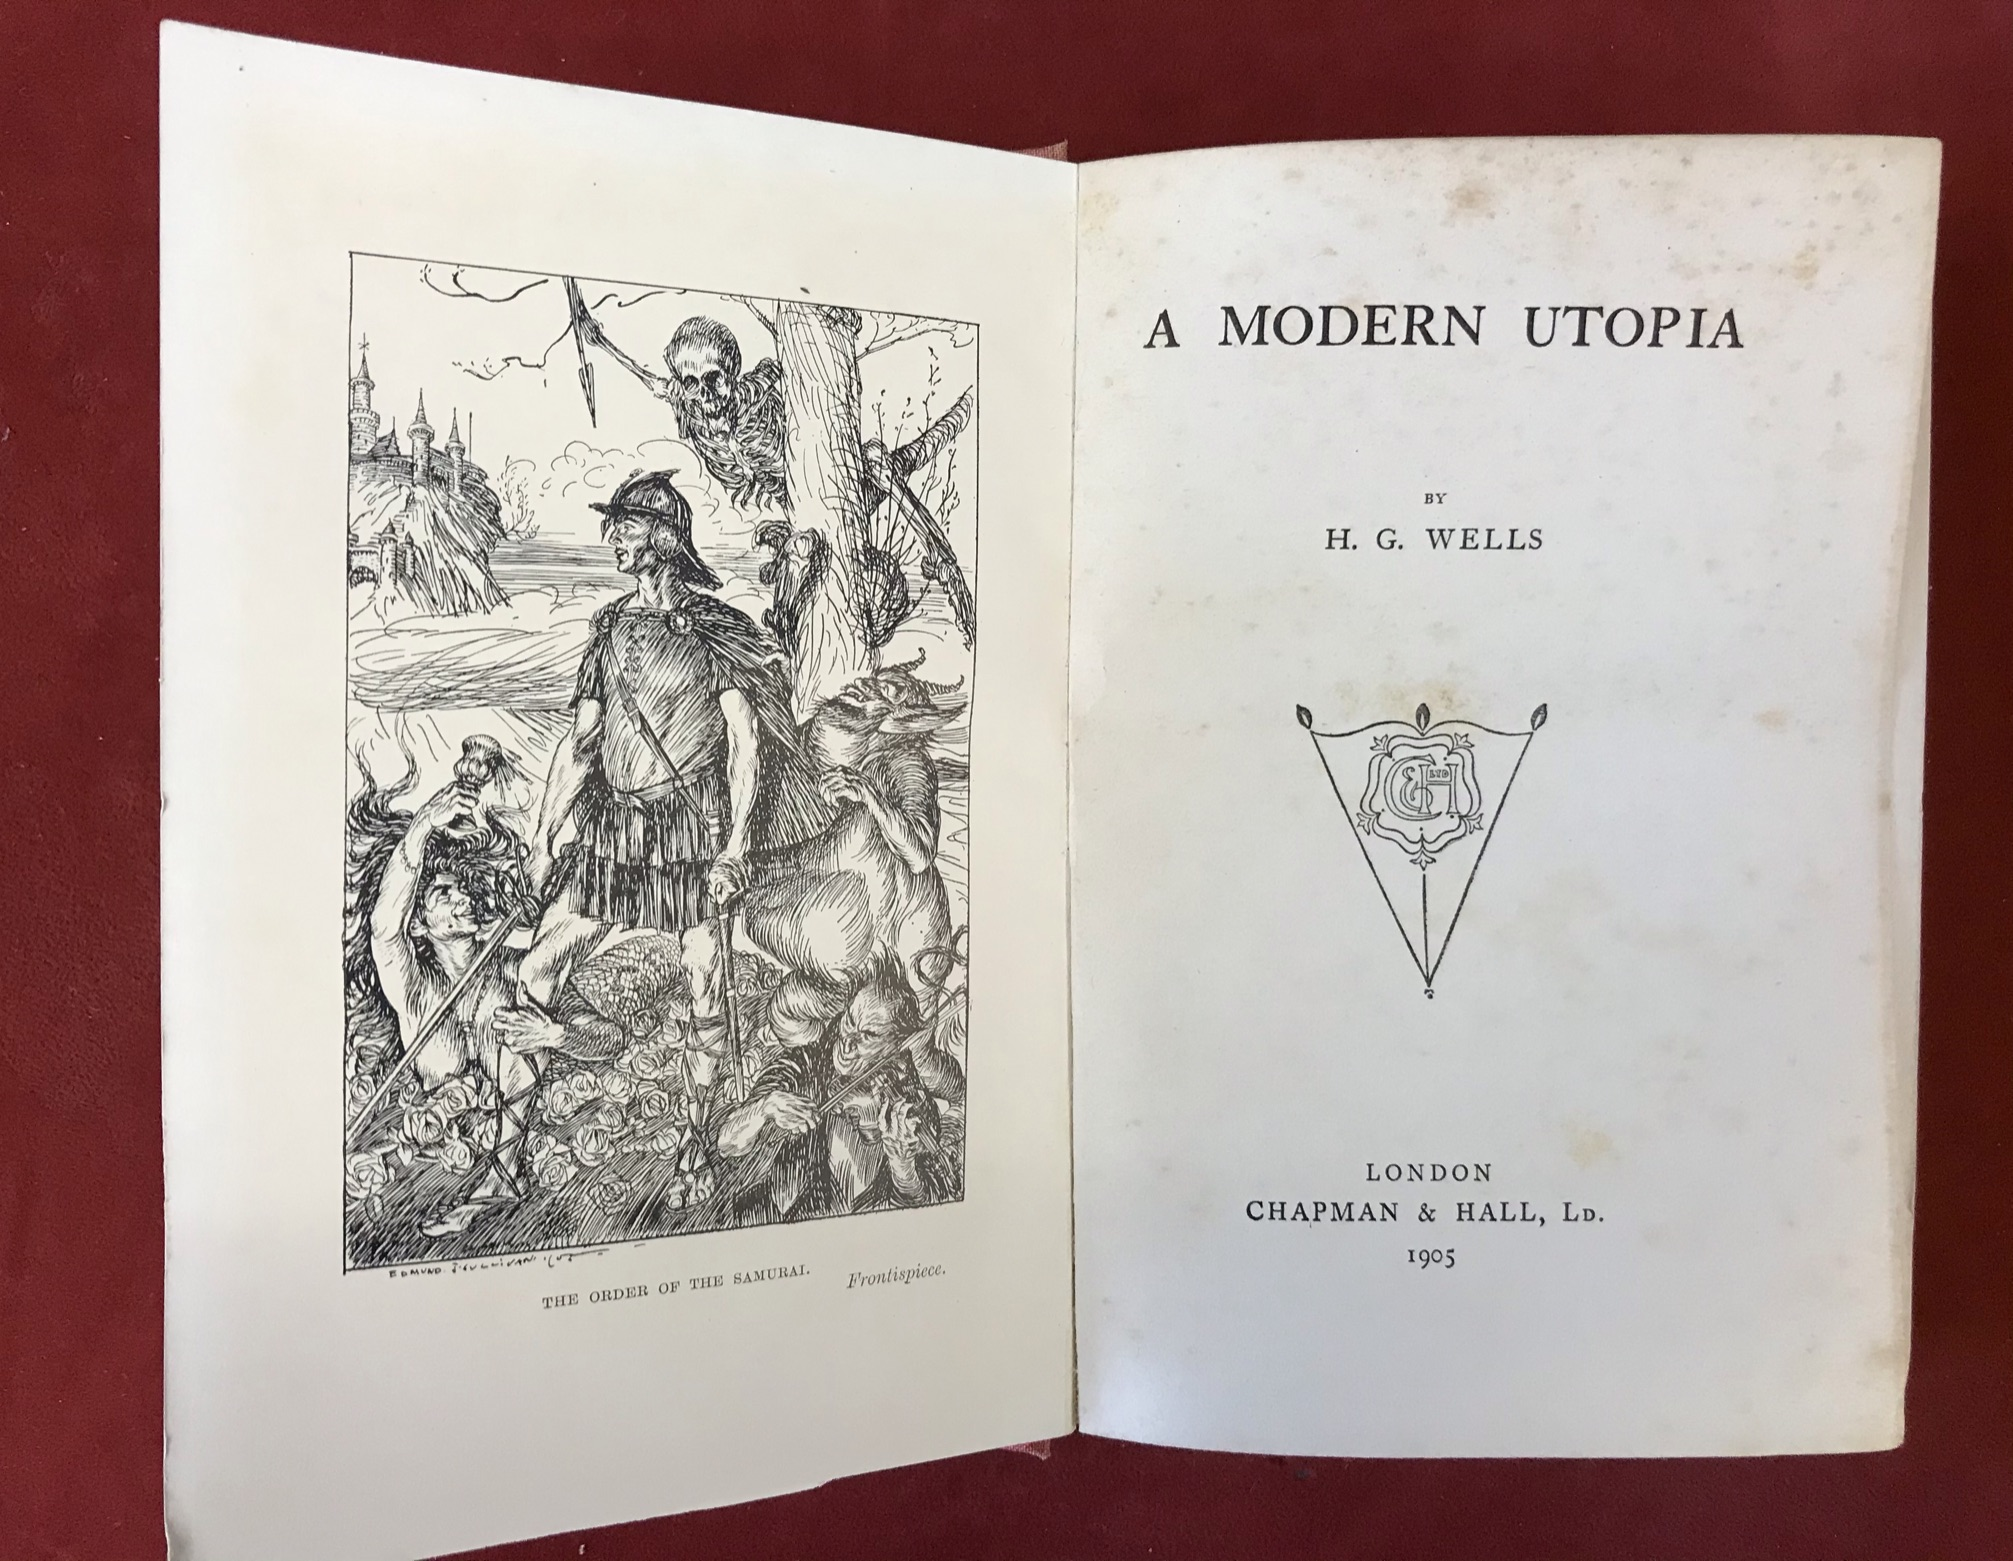 A Modern UtopiaFirst edition 1905, no D/W, faded spine - Image 3 of 3